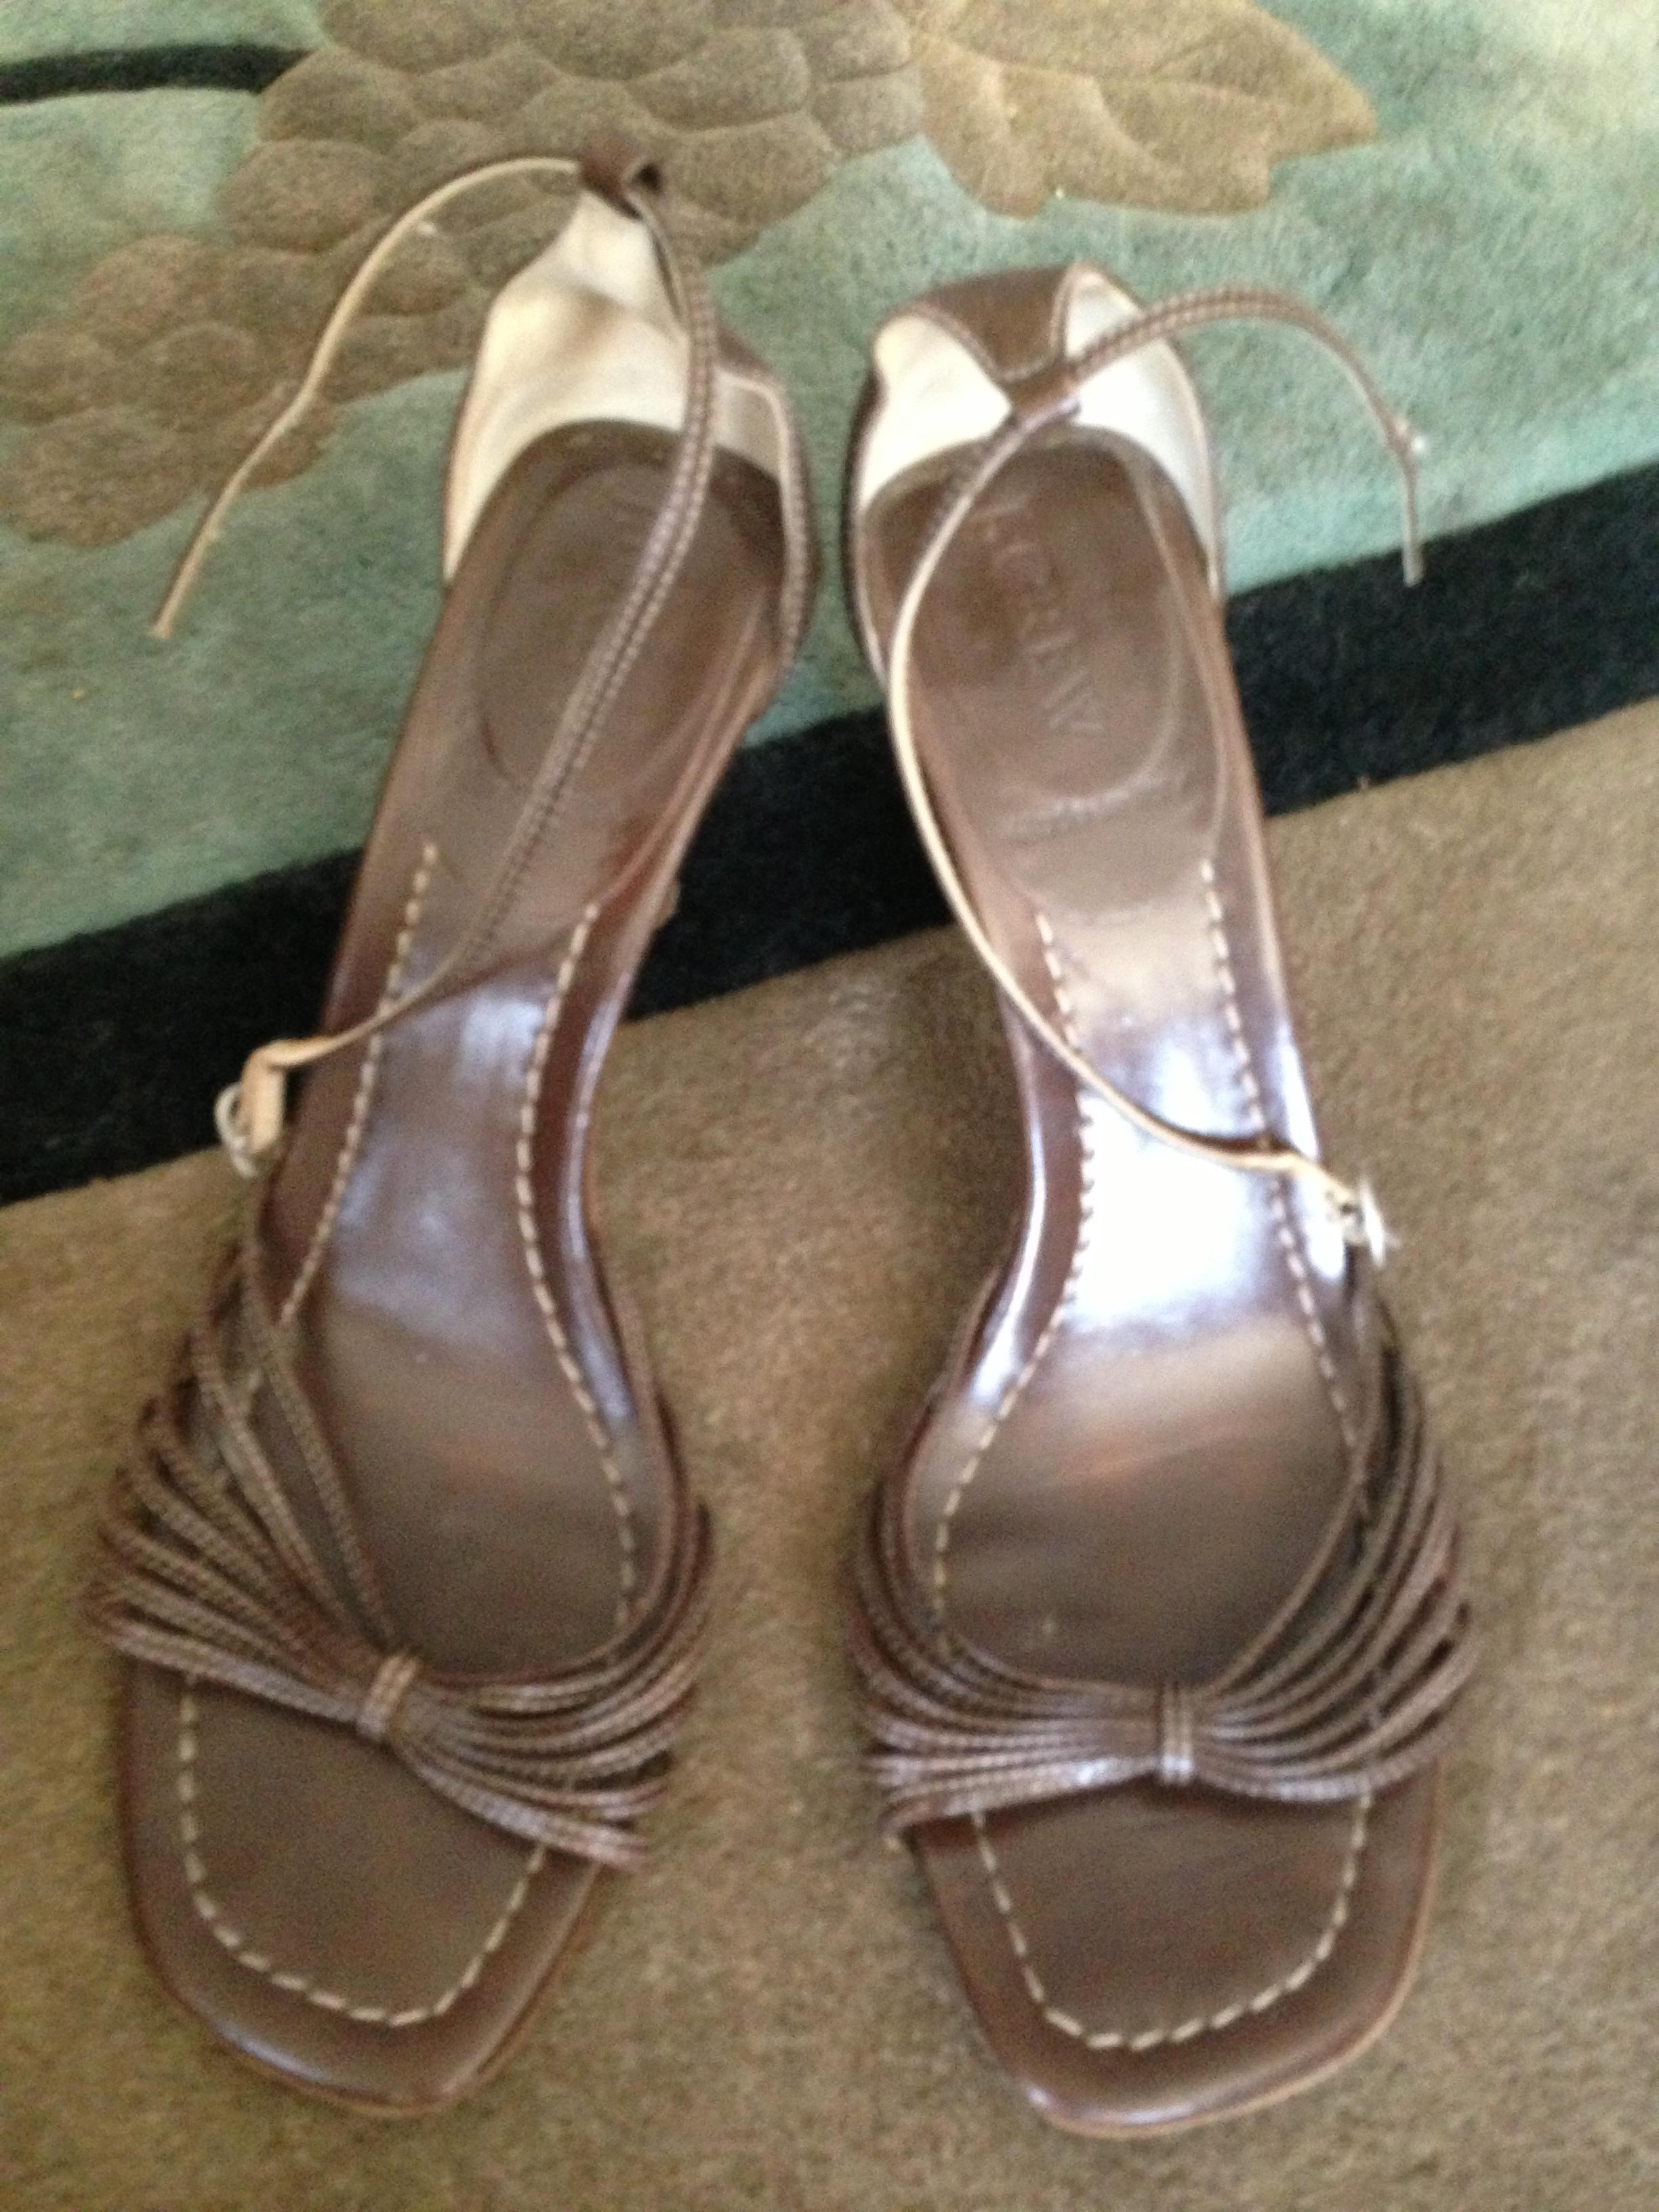 brown wedding shoes j crew brown bridesmaid heel sandals size us 8 regular m 2092